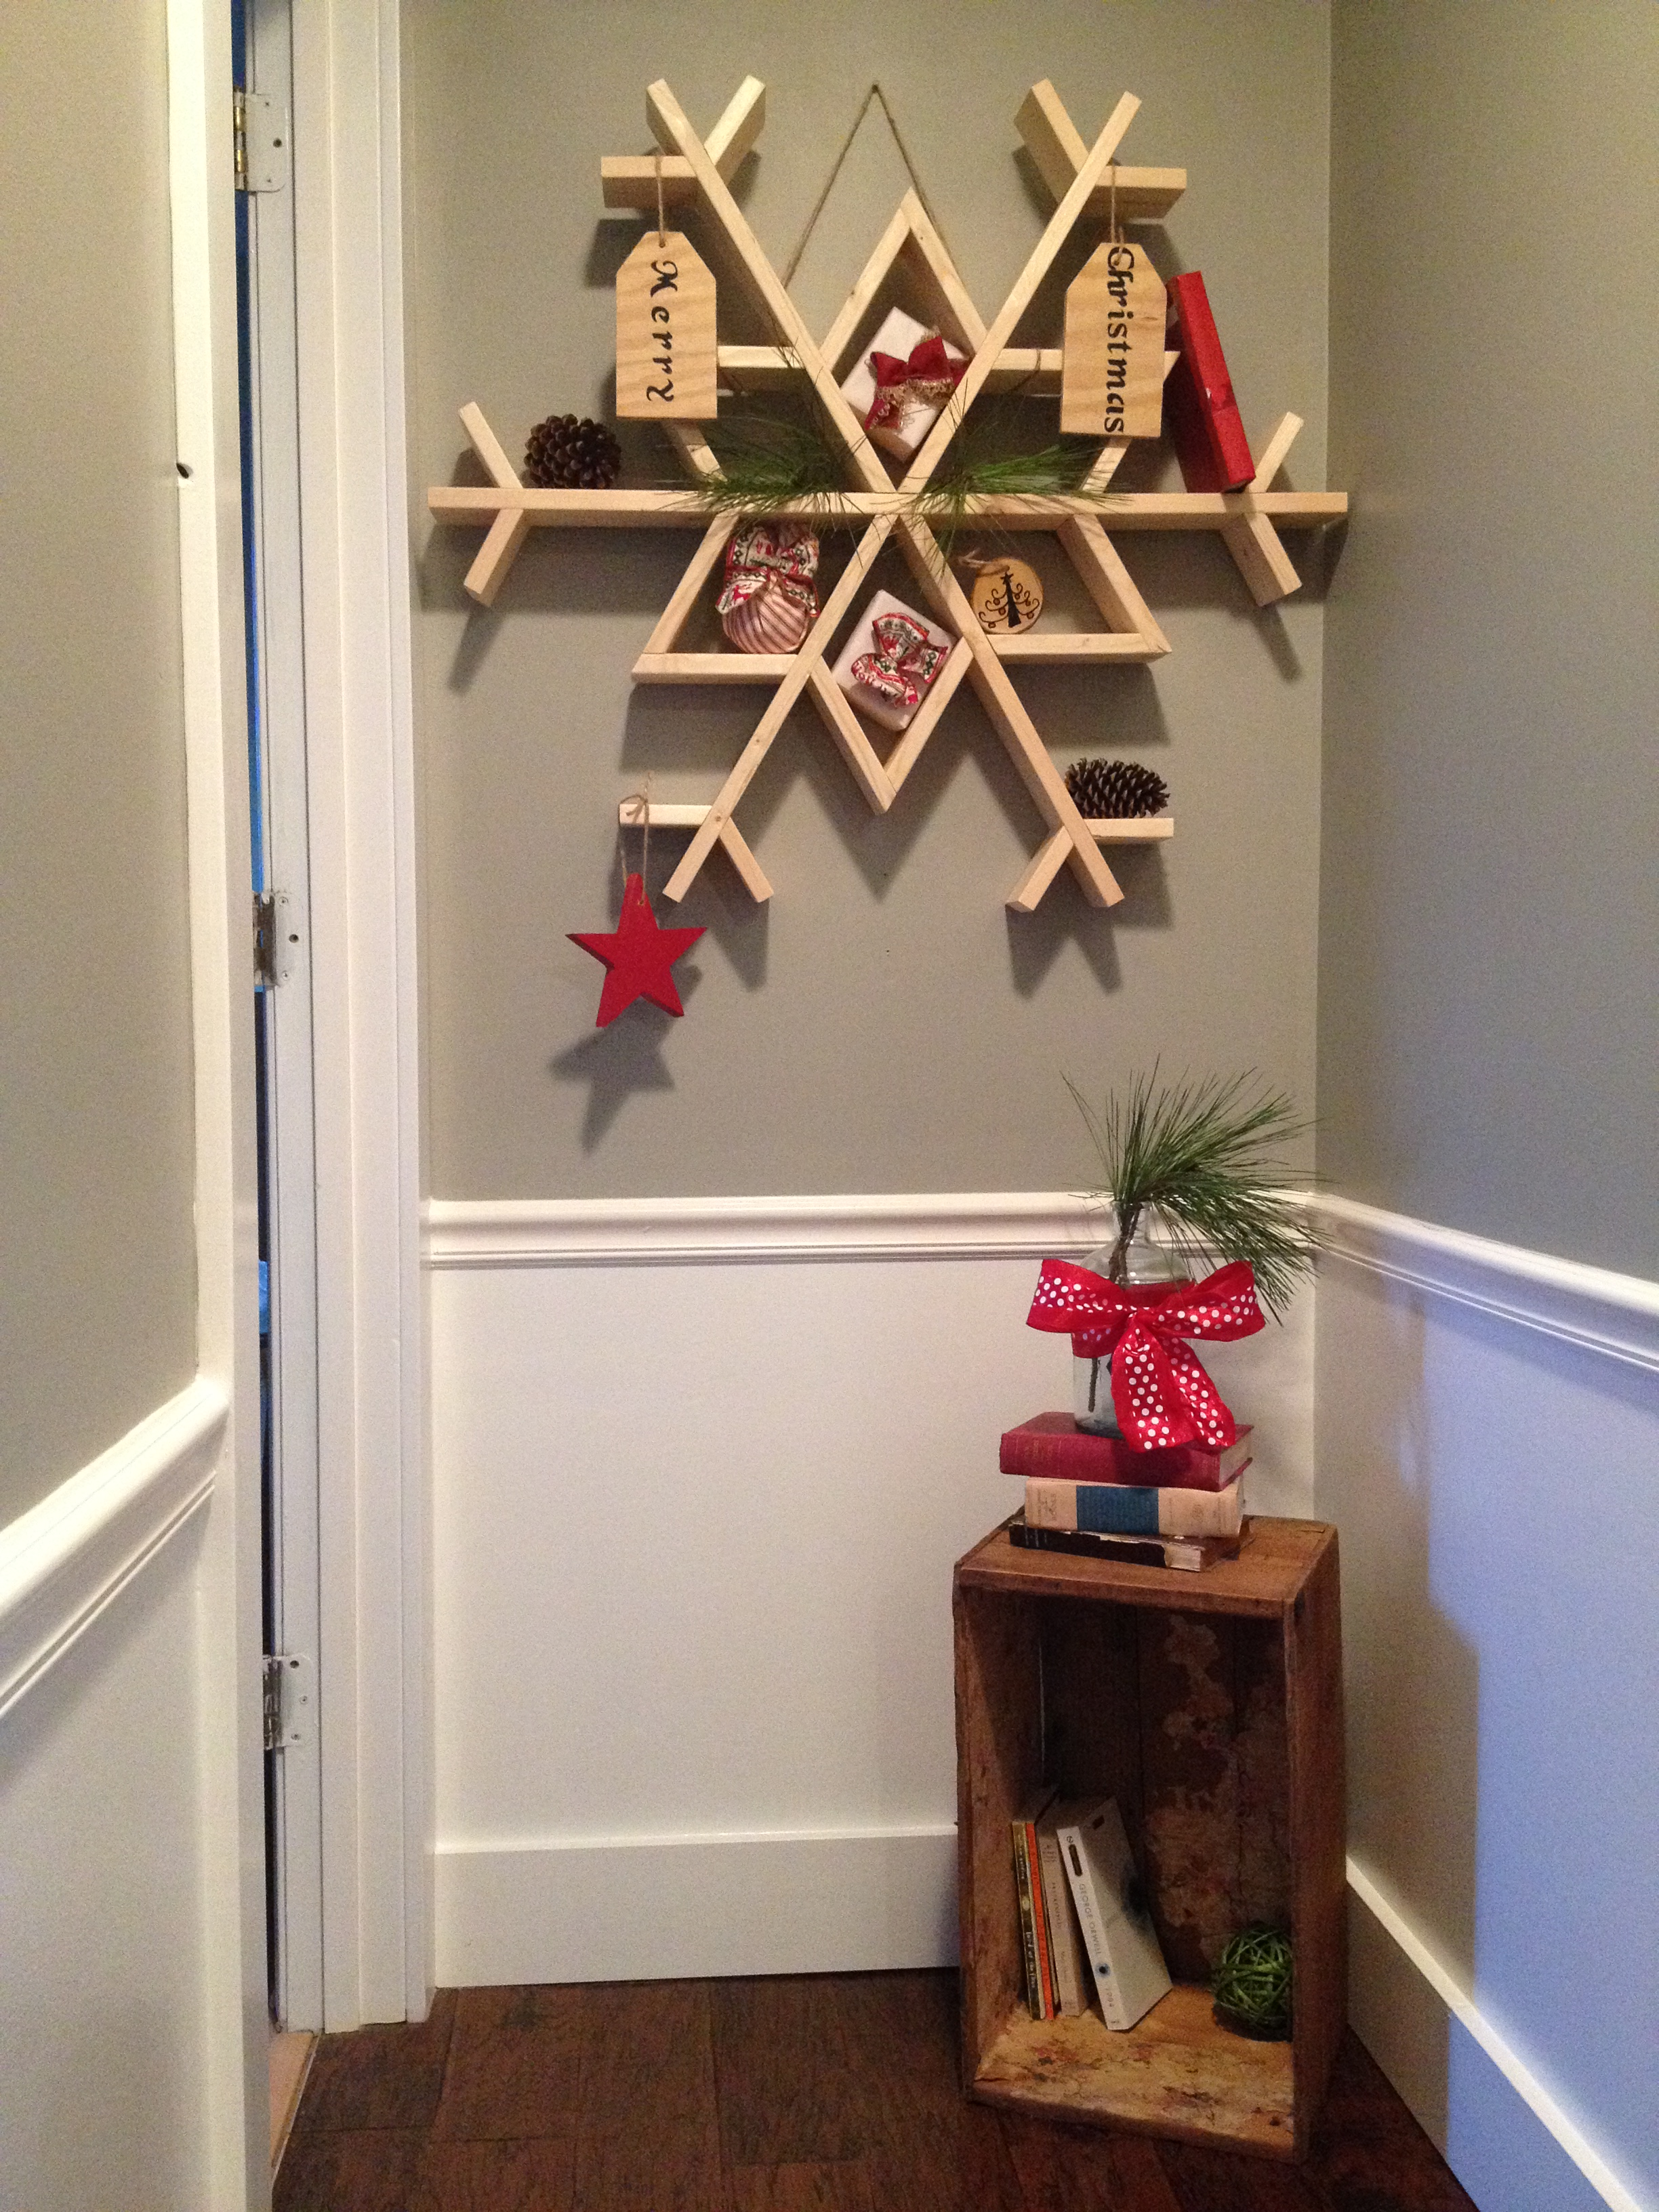 Large DIY snowflake shelf wall decor made from 1x4 boards